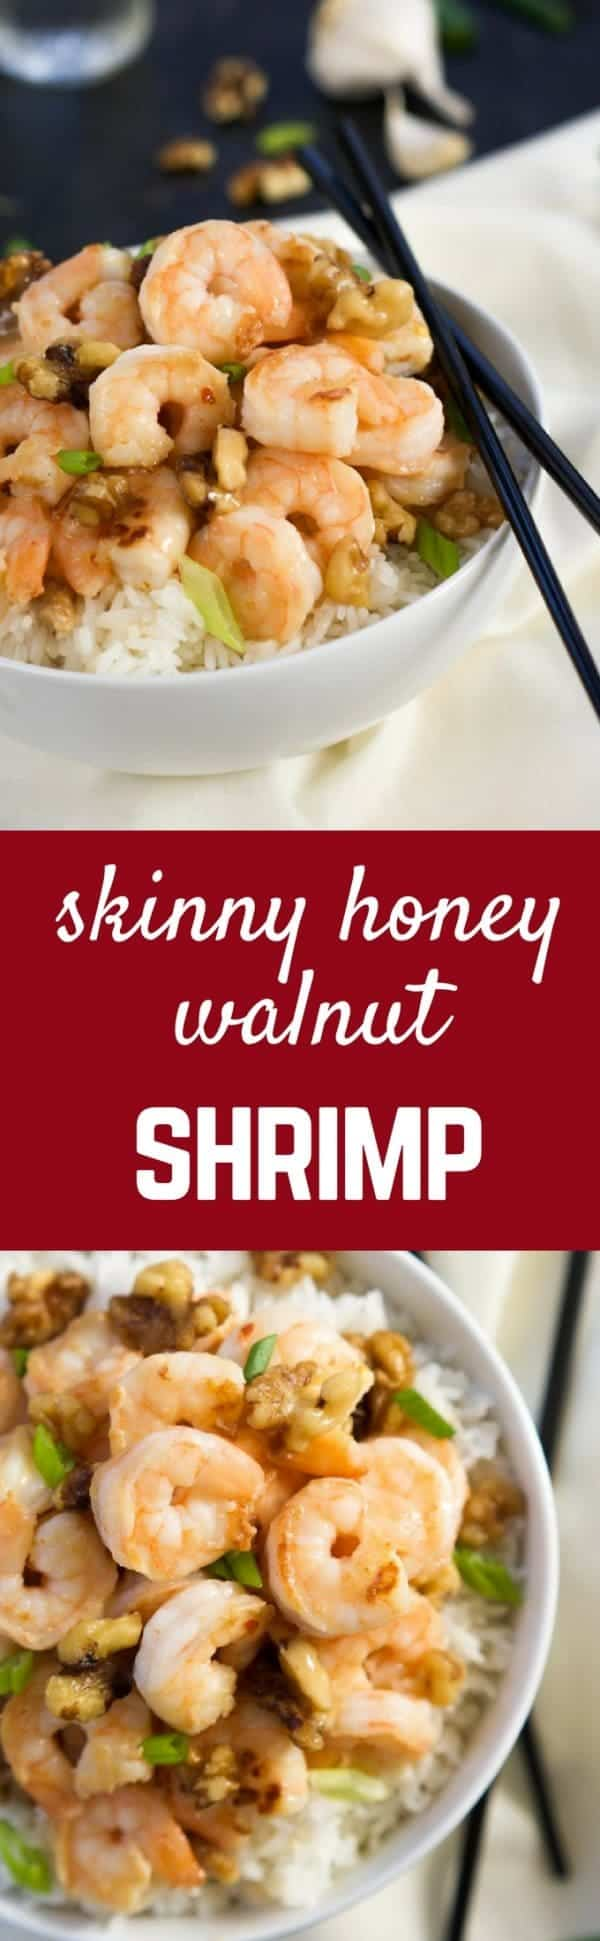 Honey Walnut Shrimp Recipe - get the takeout copycat on RachelCooks.com! You'll love this lightened up shrimp recipe that's so simple to make! Save money and stay in your pajamas while you eat this fantastic seafood recipe.